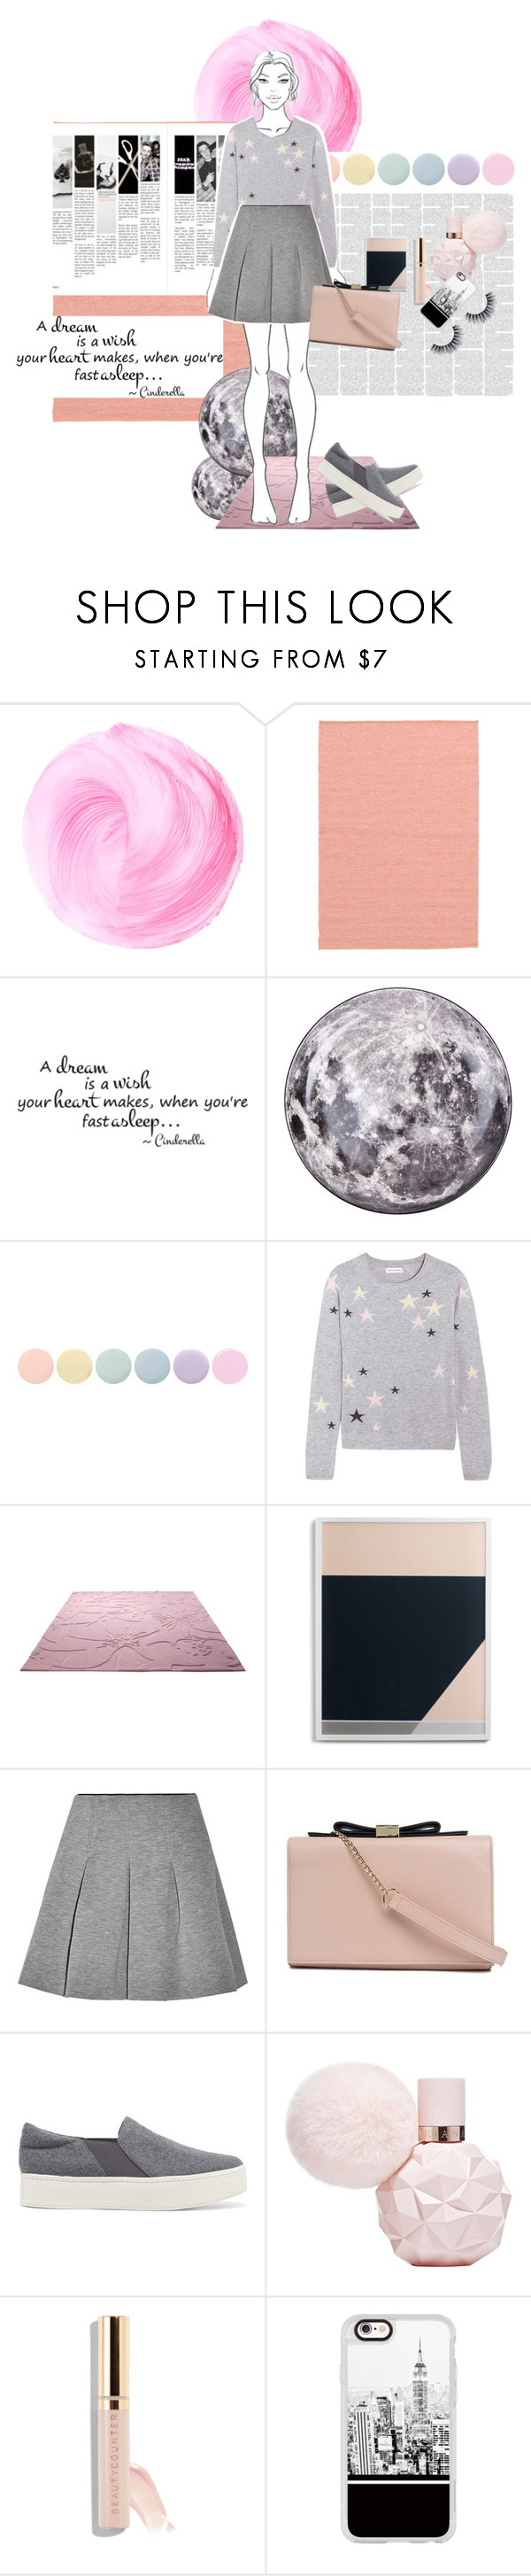 """""""Untitled #89"""" by debysilviaa on Polyvore featuring Seletti, Deborah Lippmann, Chinti and Parker, ESPRIT, Louise Gray, T By Alexander Wang, See by Chloé, Vince, Beautycounter and Casetify"""